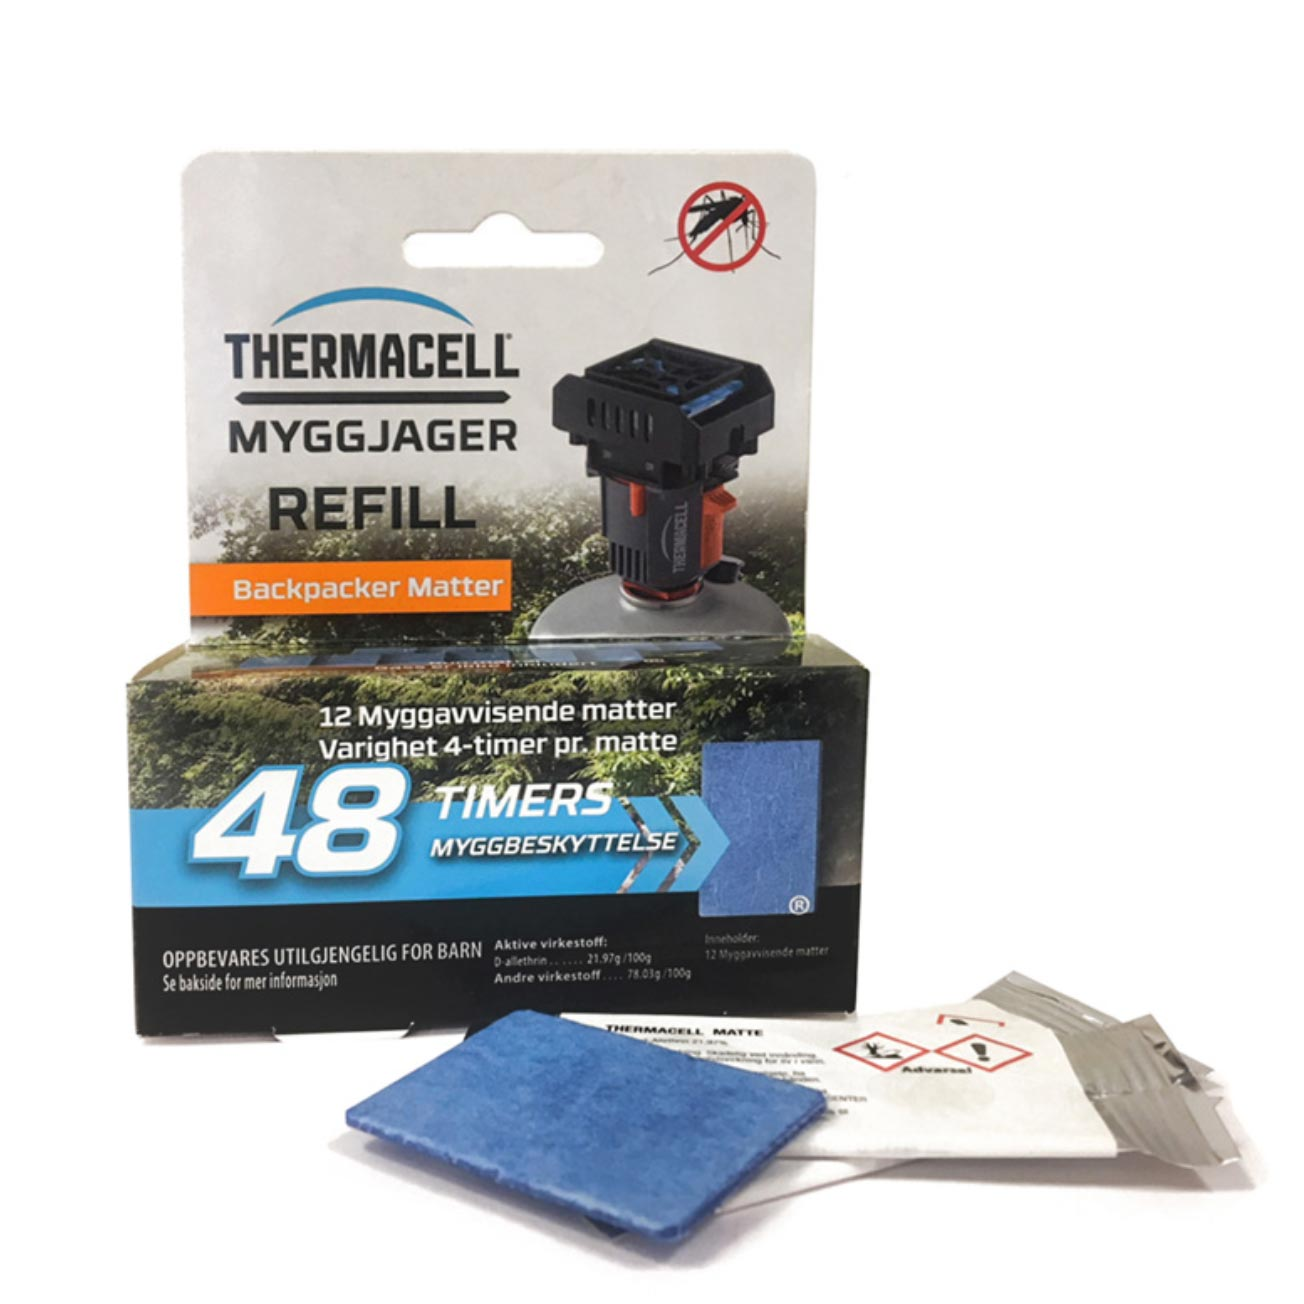 MYGGJAGER BACKPACKER REFILL 48 TIMER